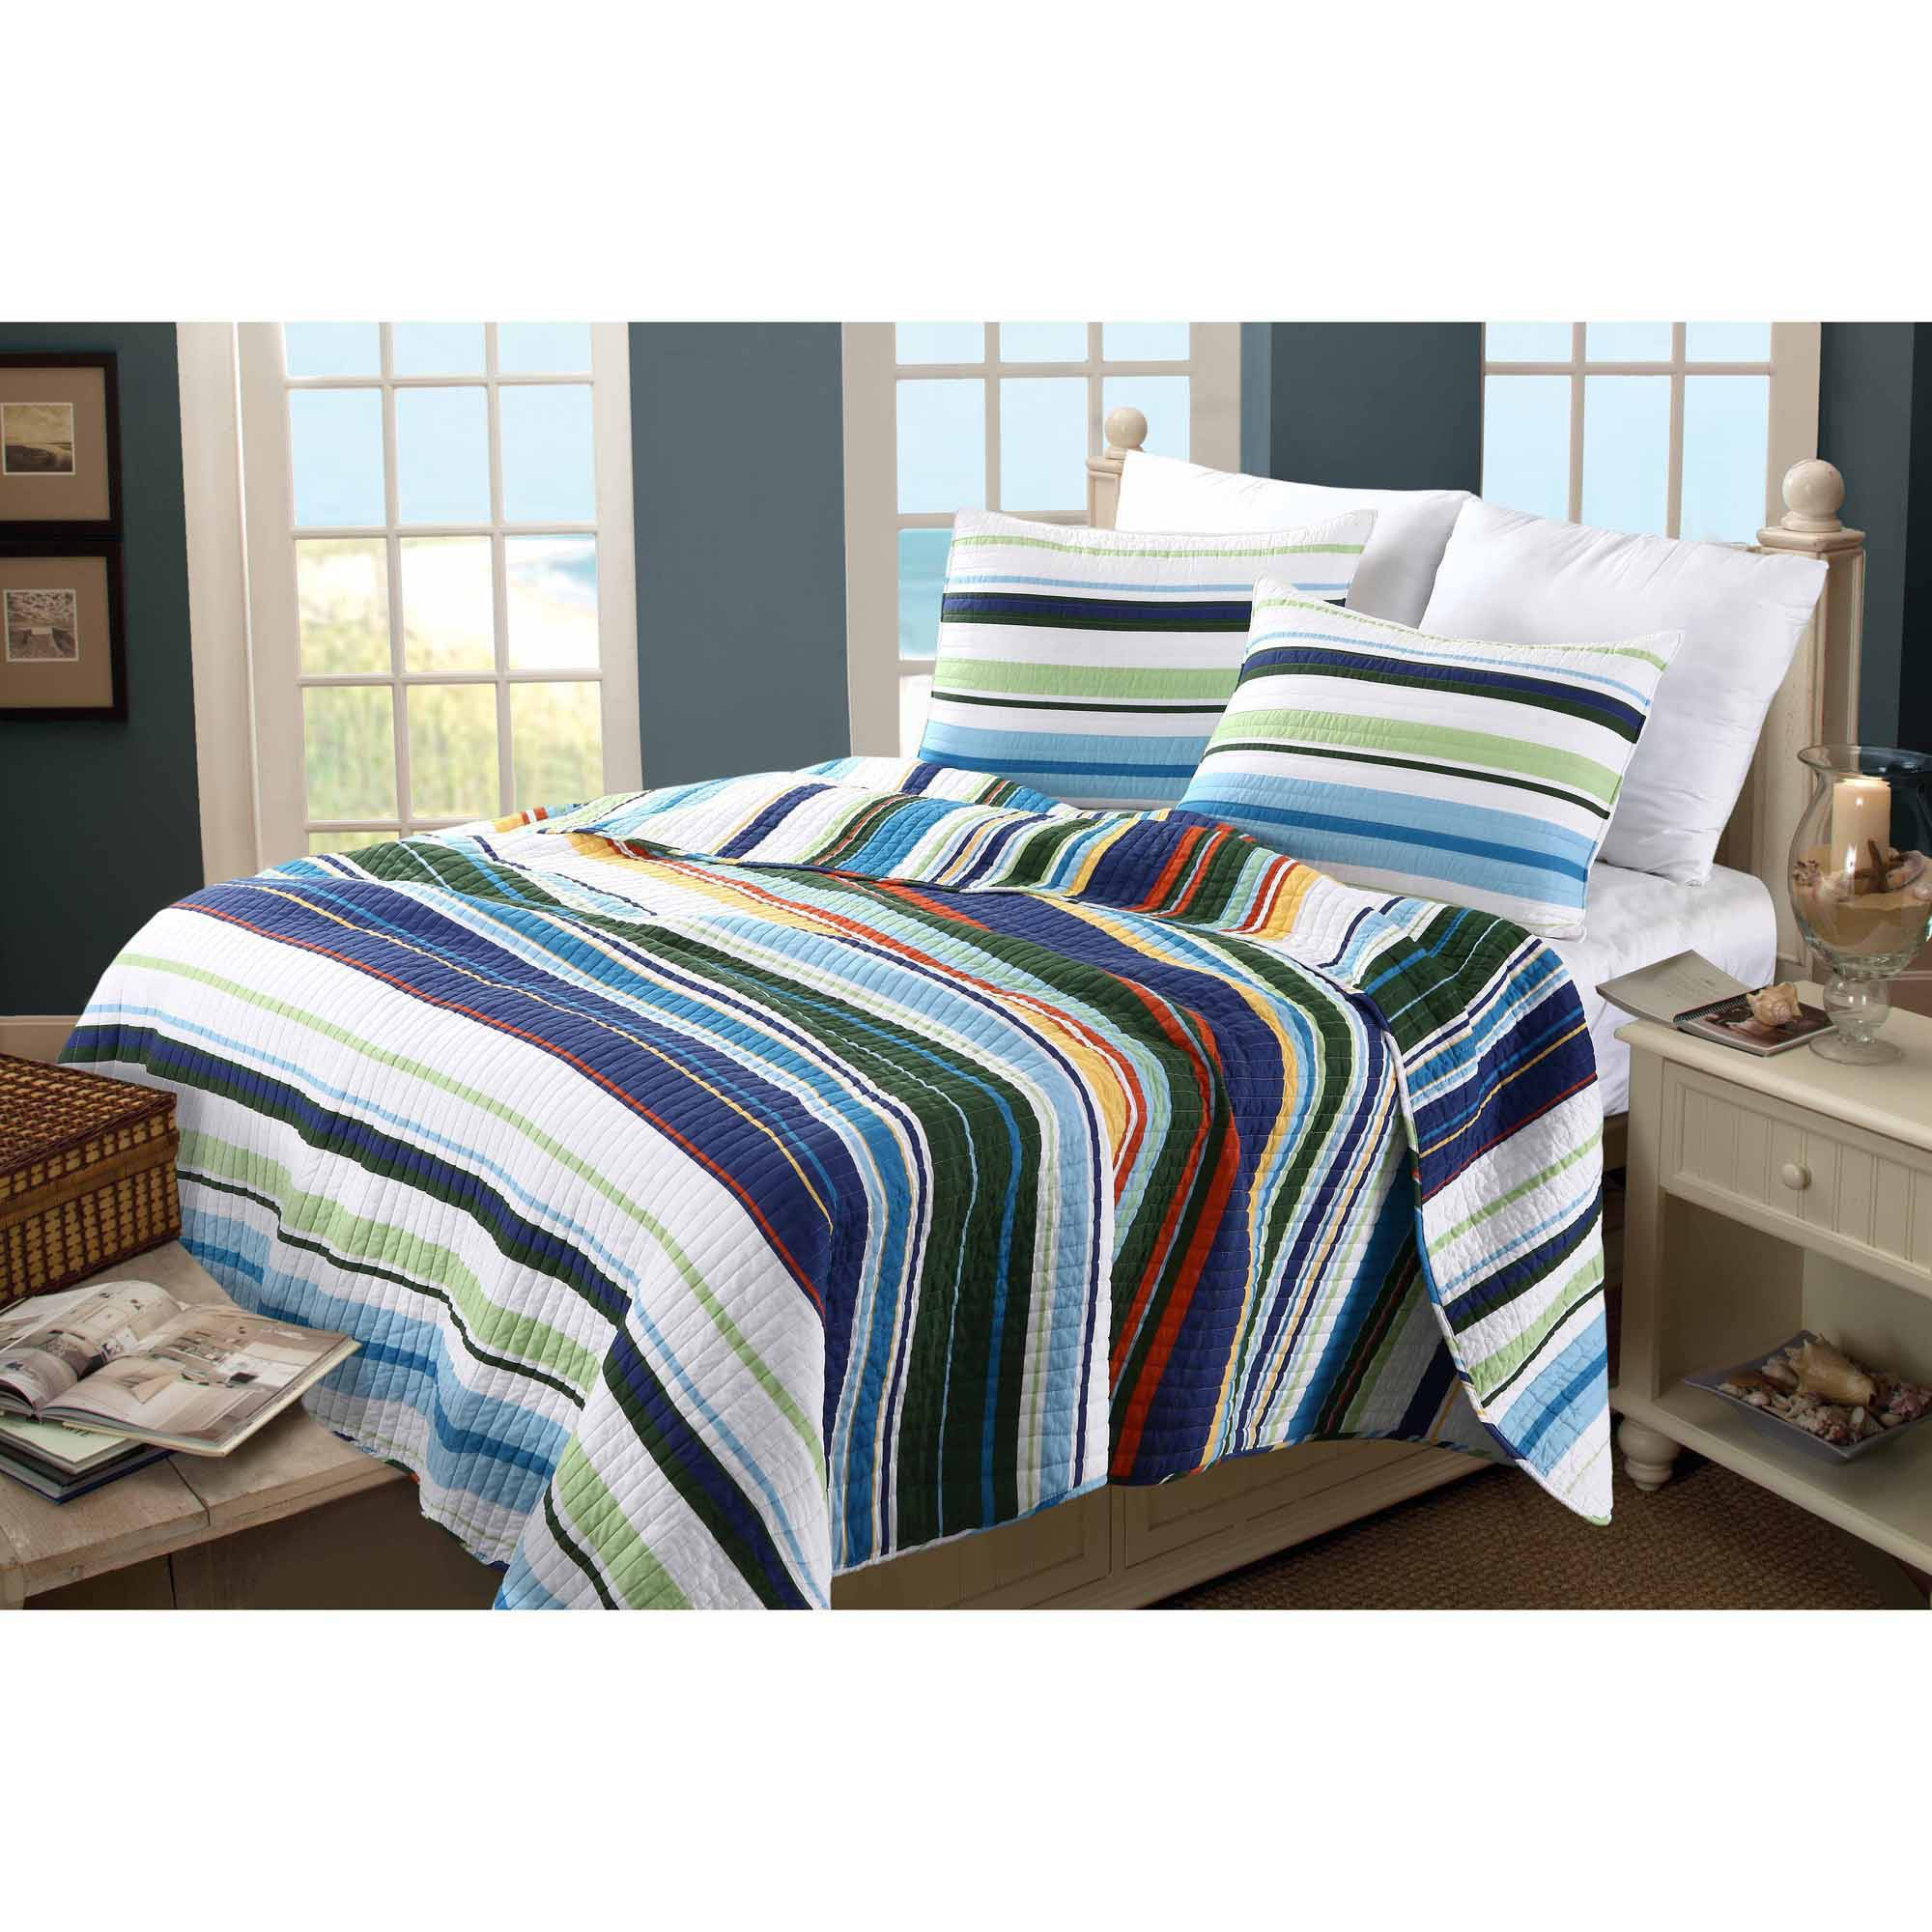 Greenland Home Fashions Global Trends Jersey Bedding Quilt Set